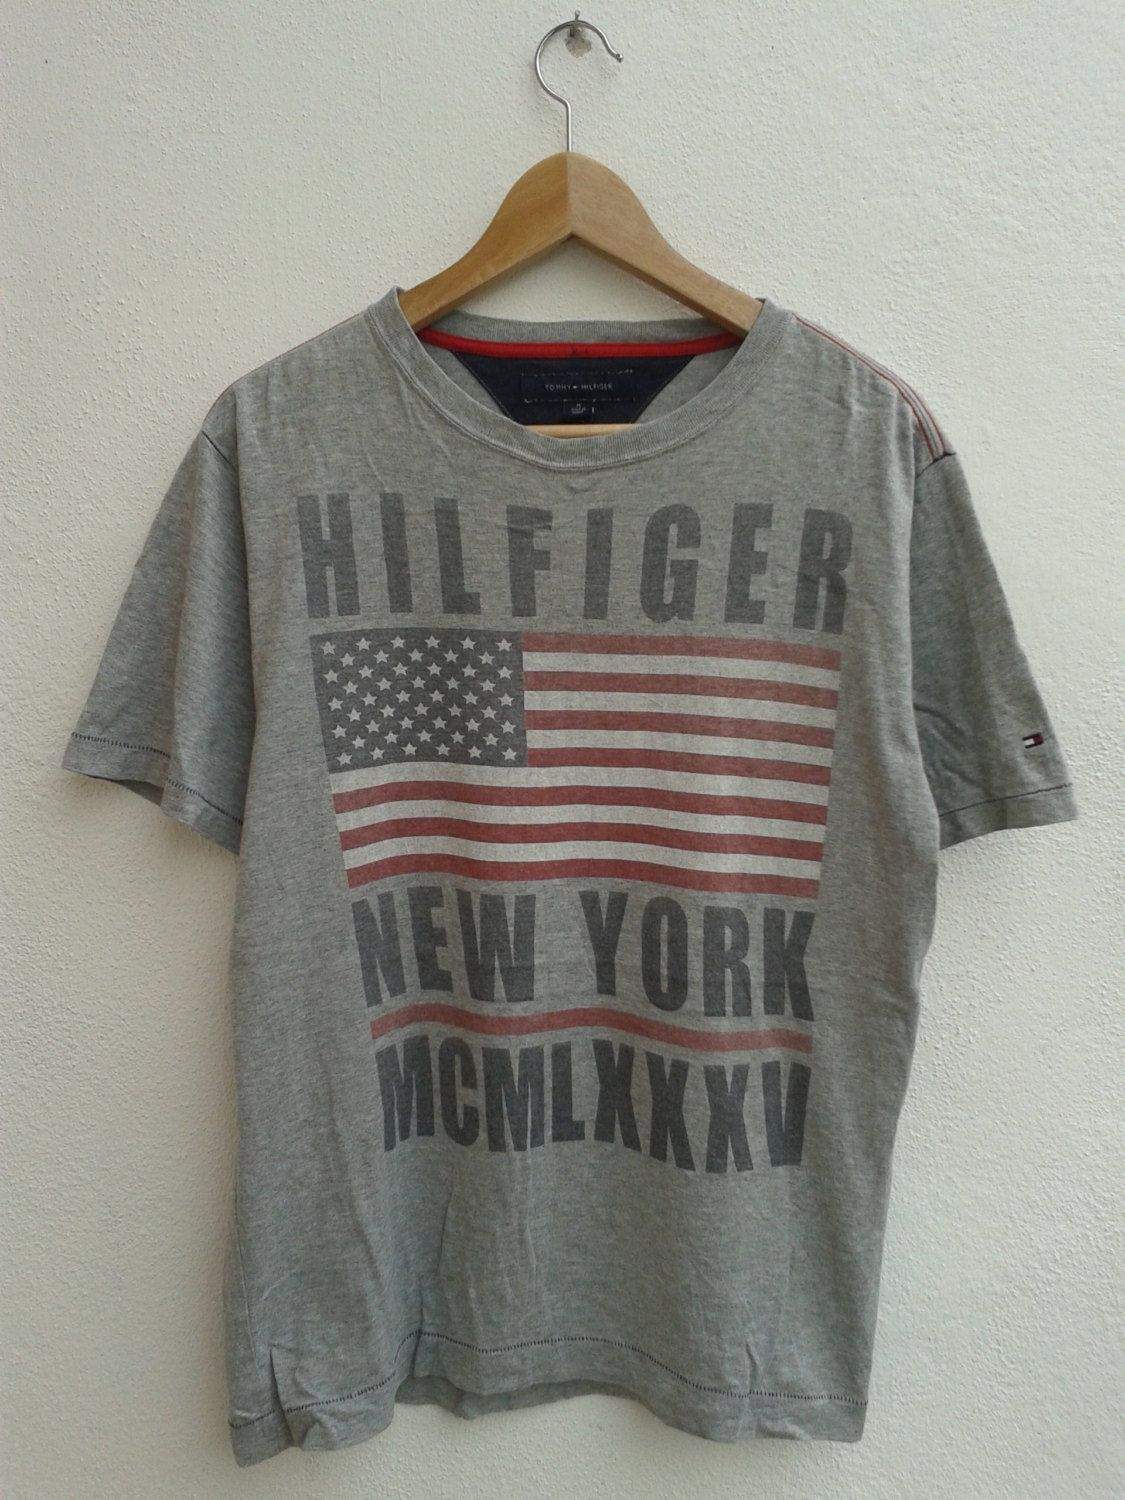 RARE Vintage 90s TOMMY HILFIGER Spell Out Big Flag Hip Hop Vibes Streetwear Tanks Tops Shirt Size L SfUwCY